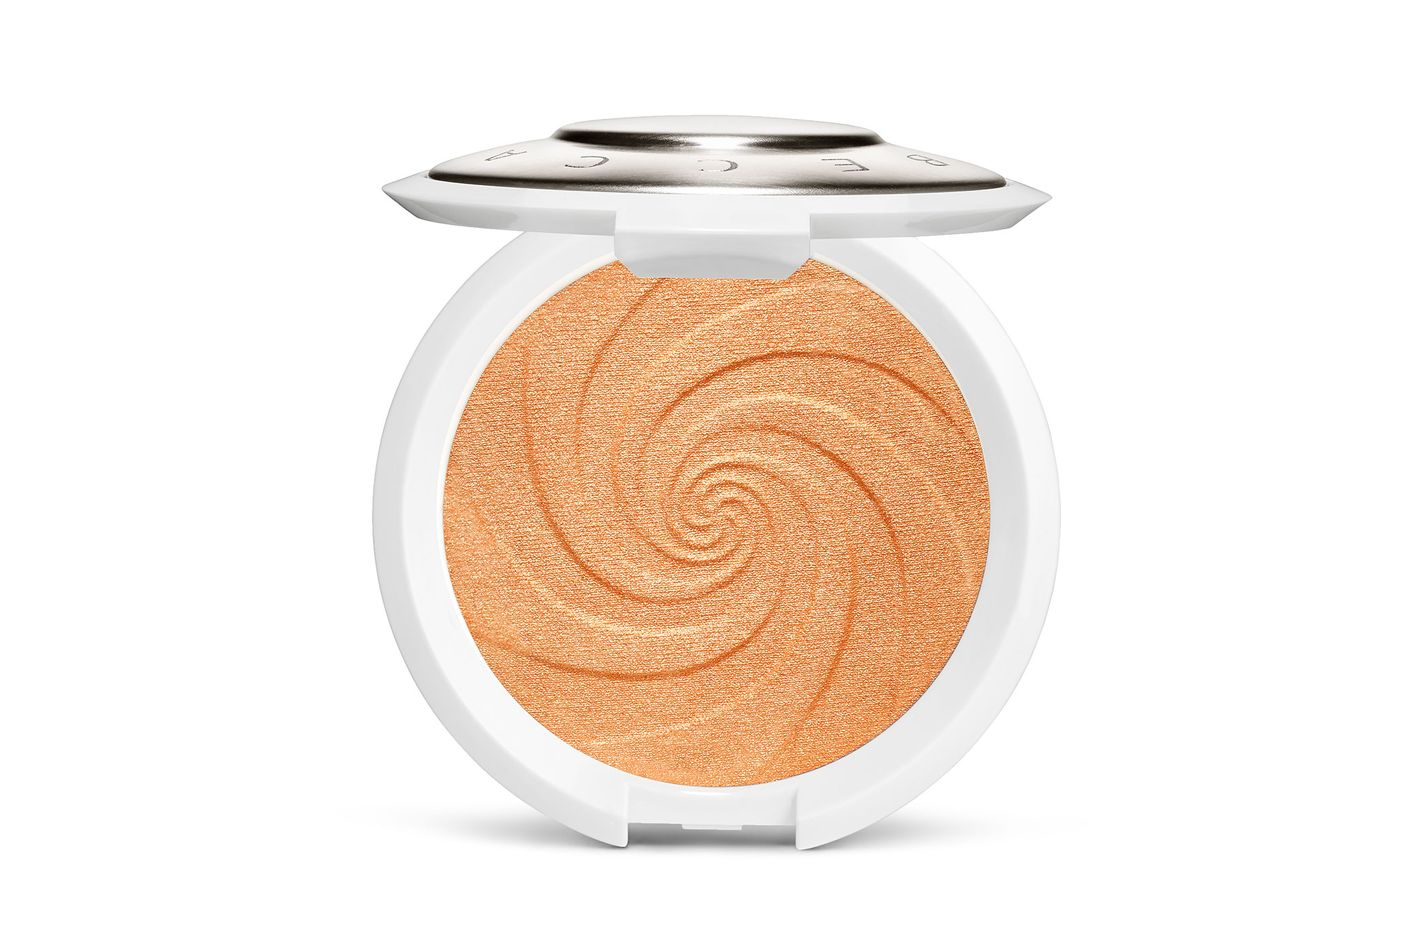 Shimmering Skin Perfector Pressed Highlighter in Dreamsicle